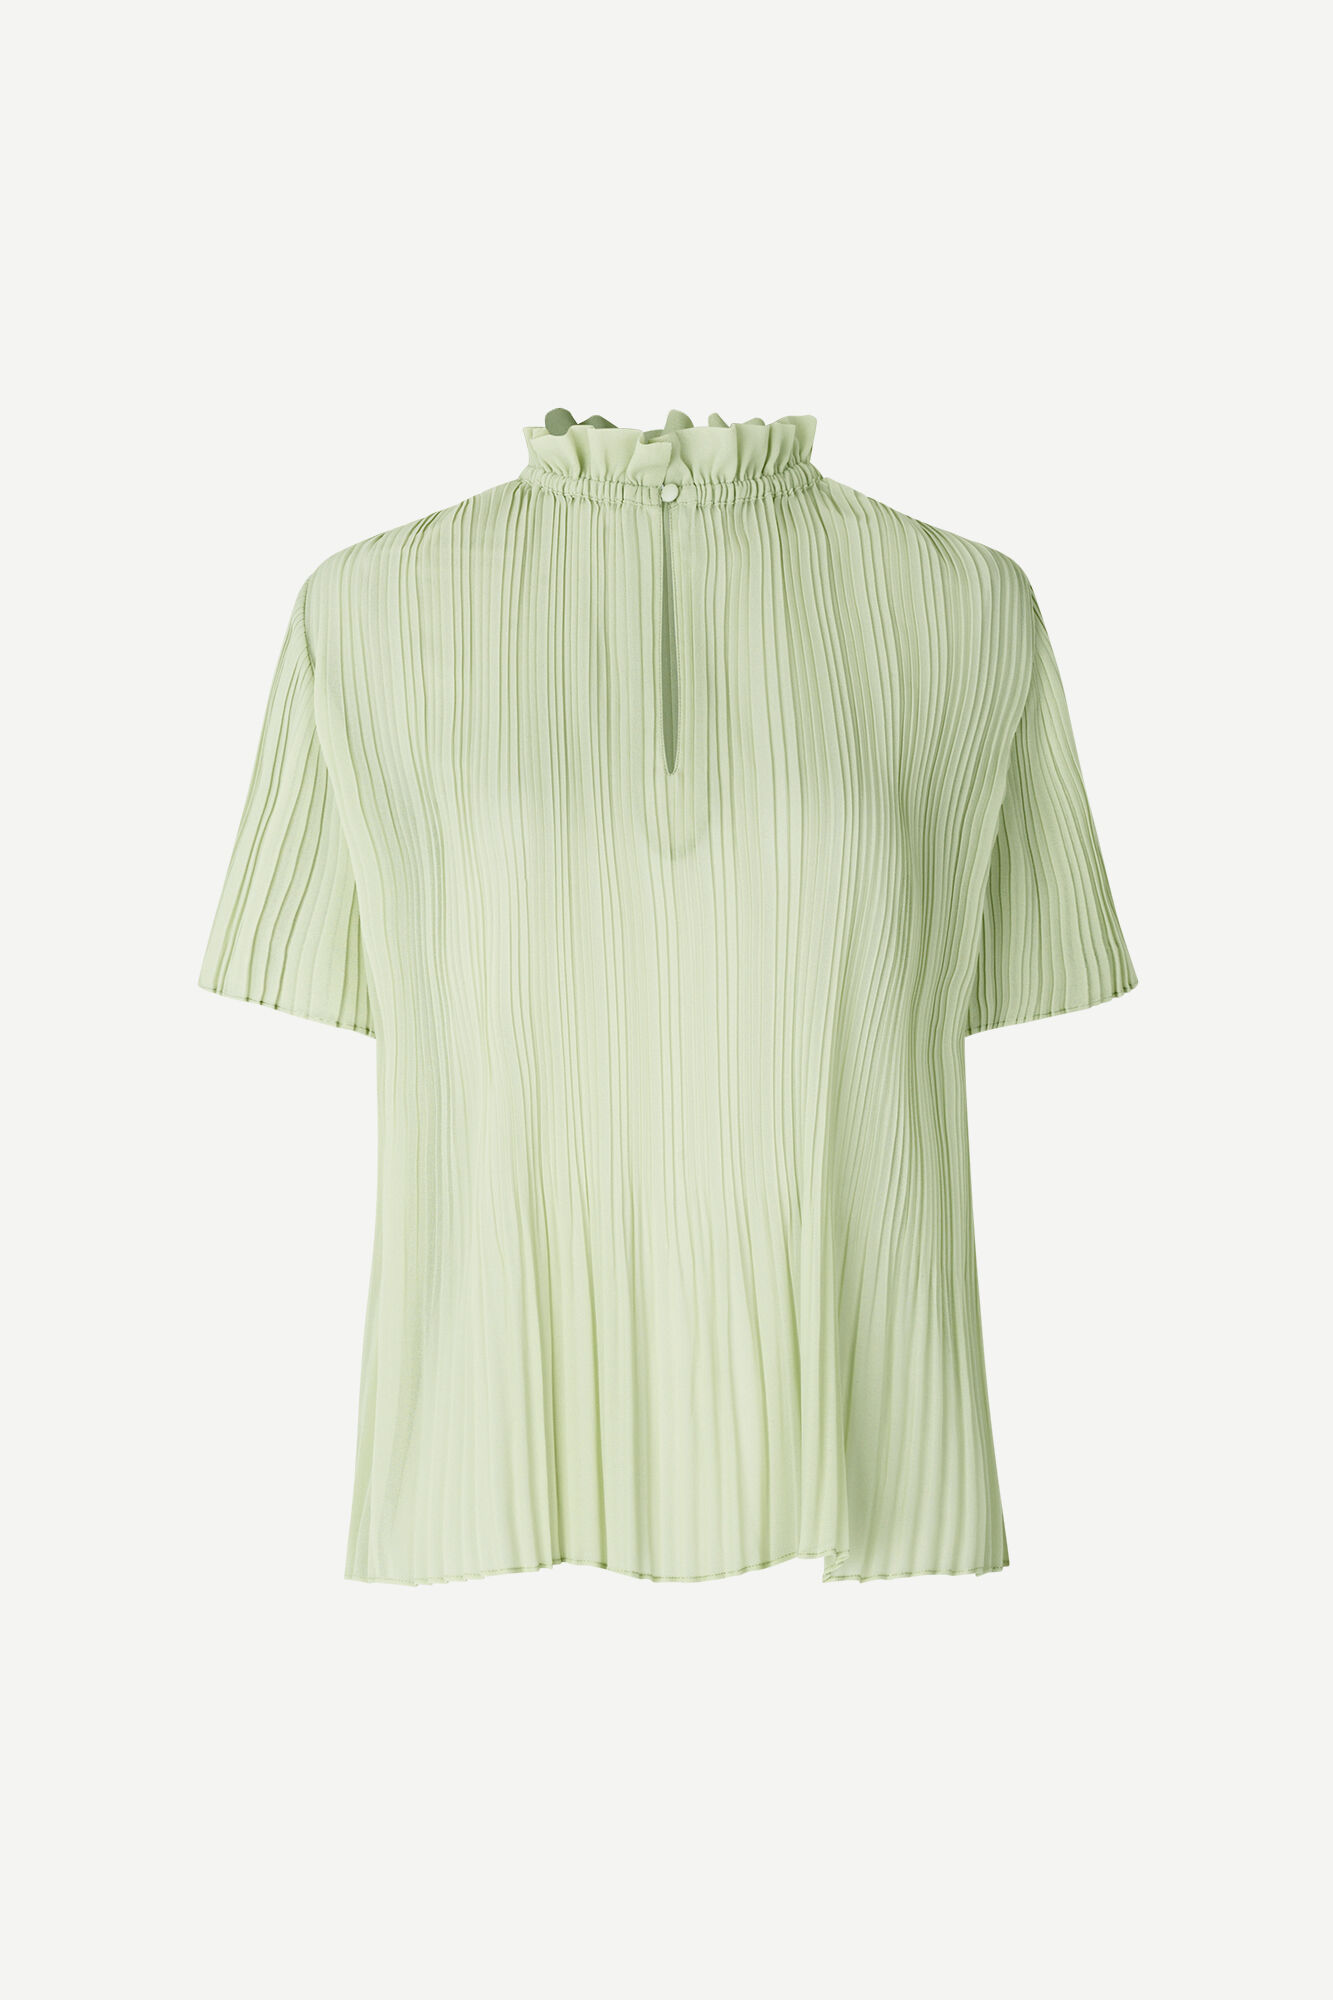 Lady ss blouse 6621, FOG GREEN